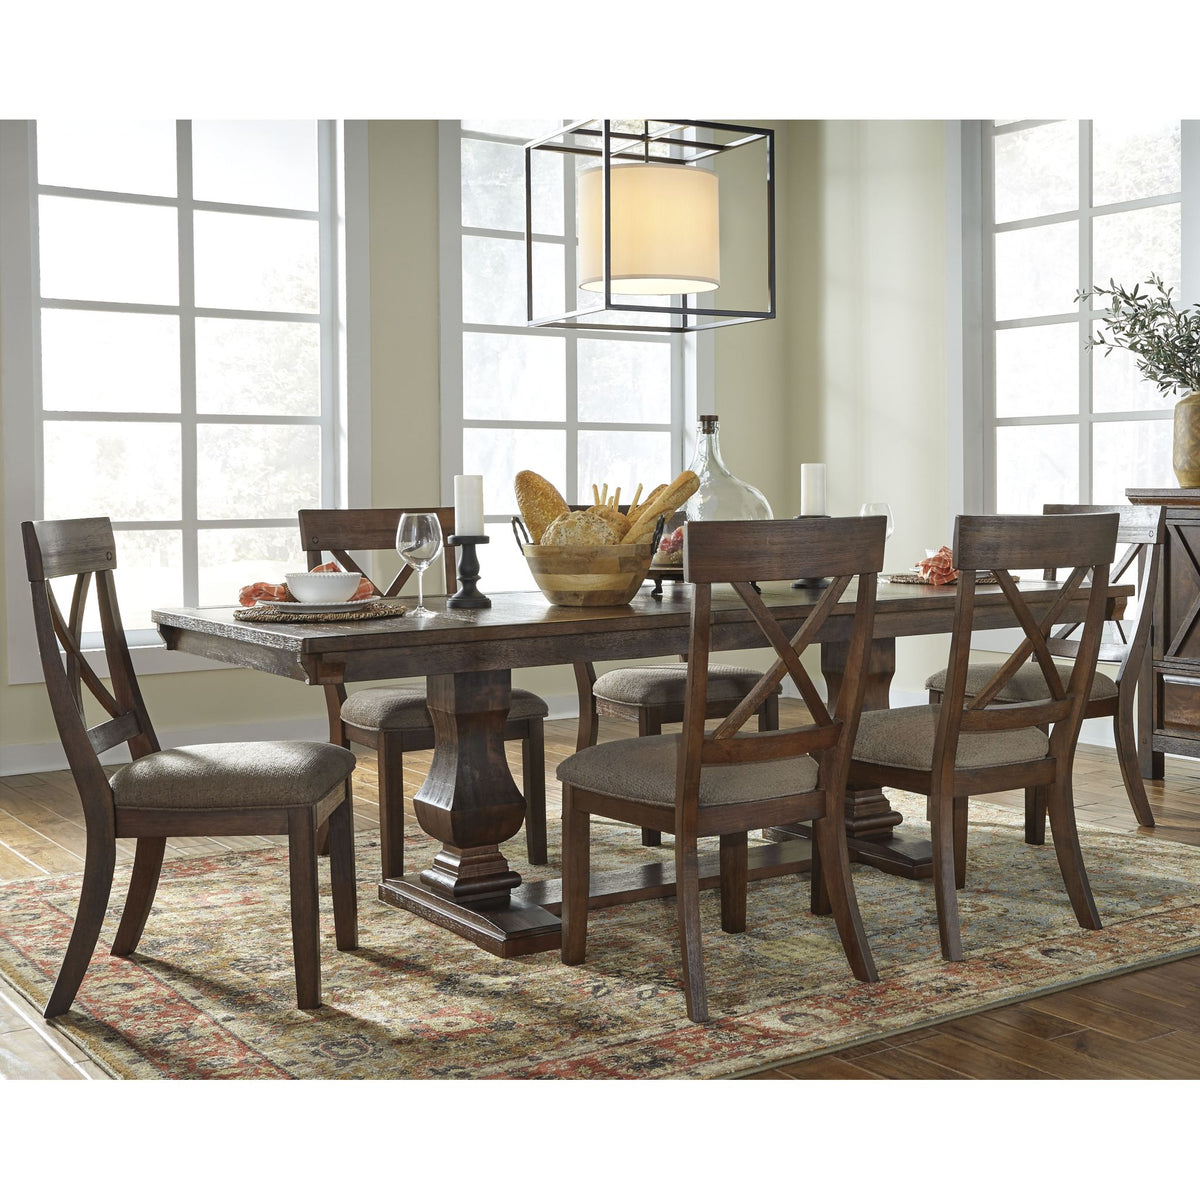 Windville Exclusive Extension Dining Table Ashley Homestore Canada